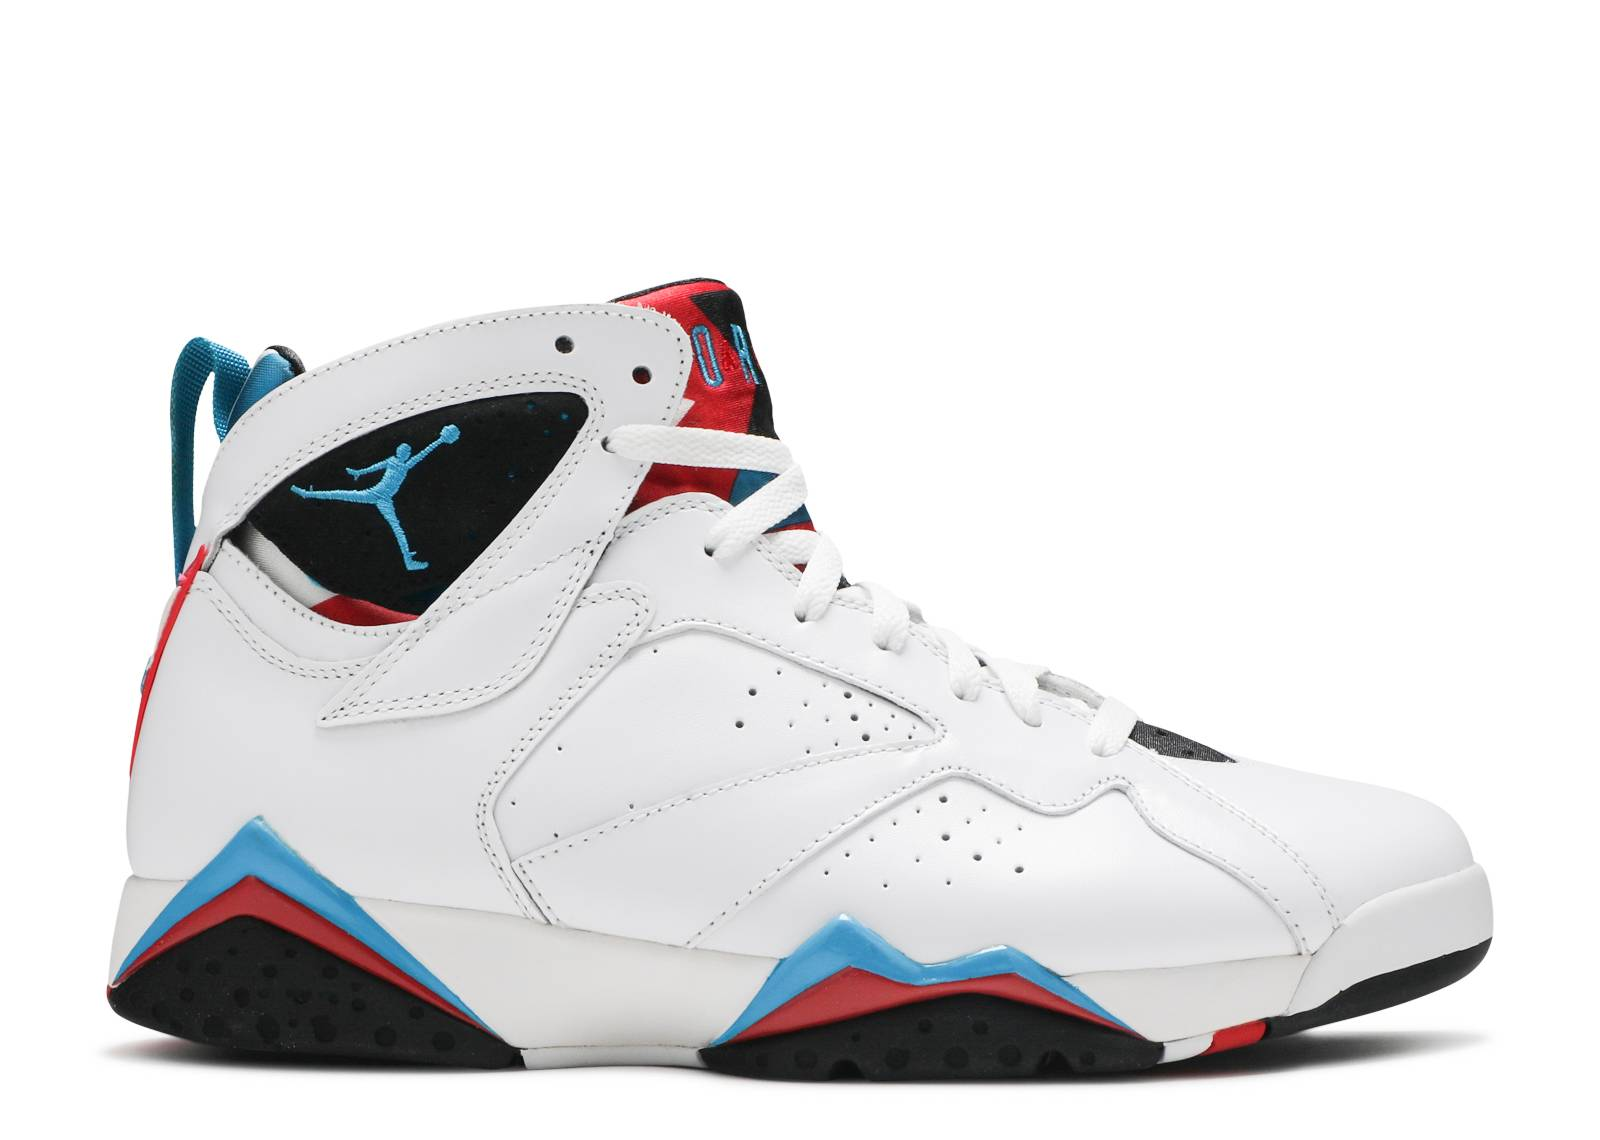 Womens Jordan 7 White/Blue-Black-InfraredShoes_a3225